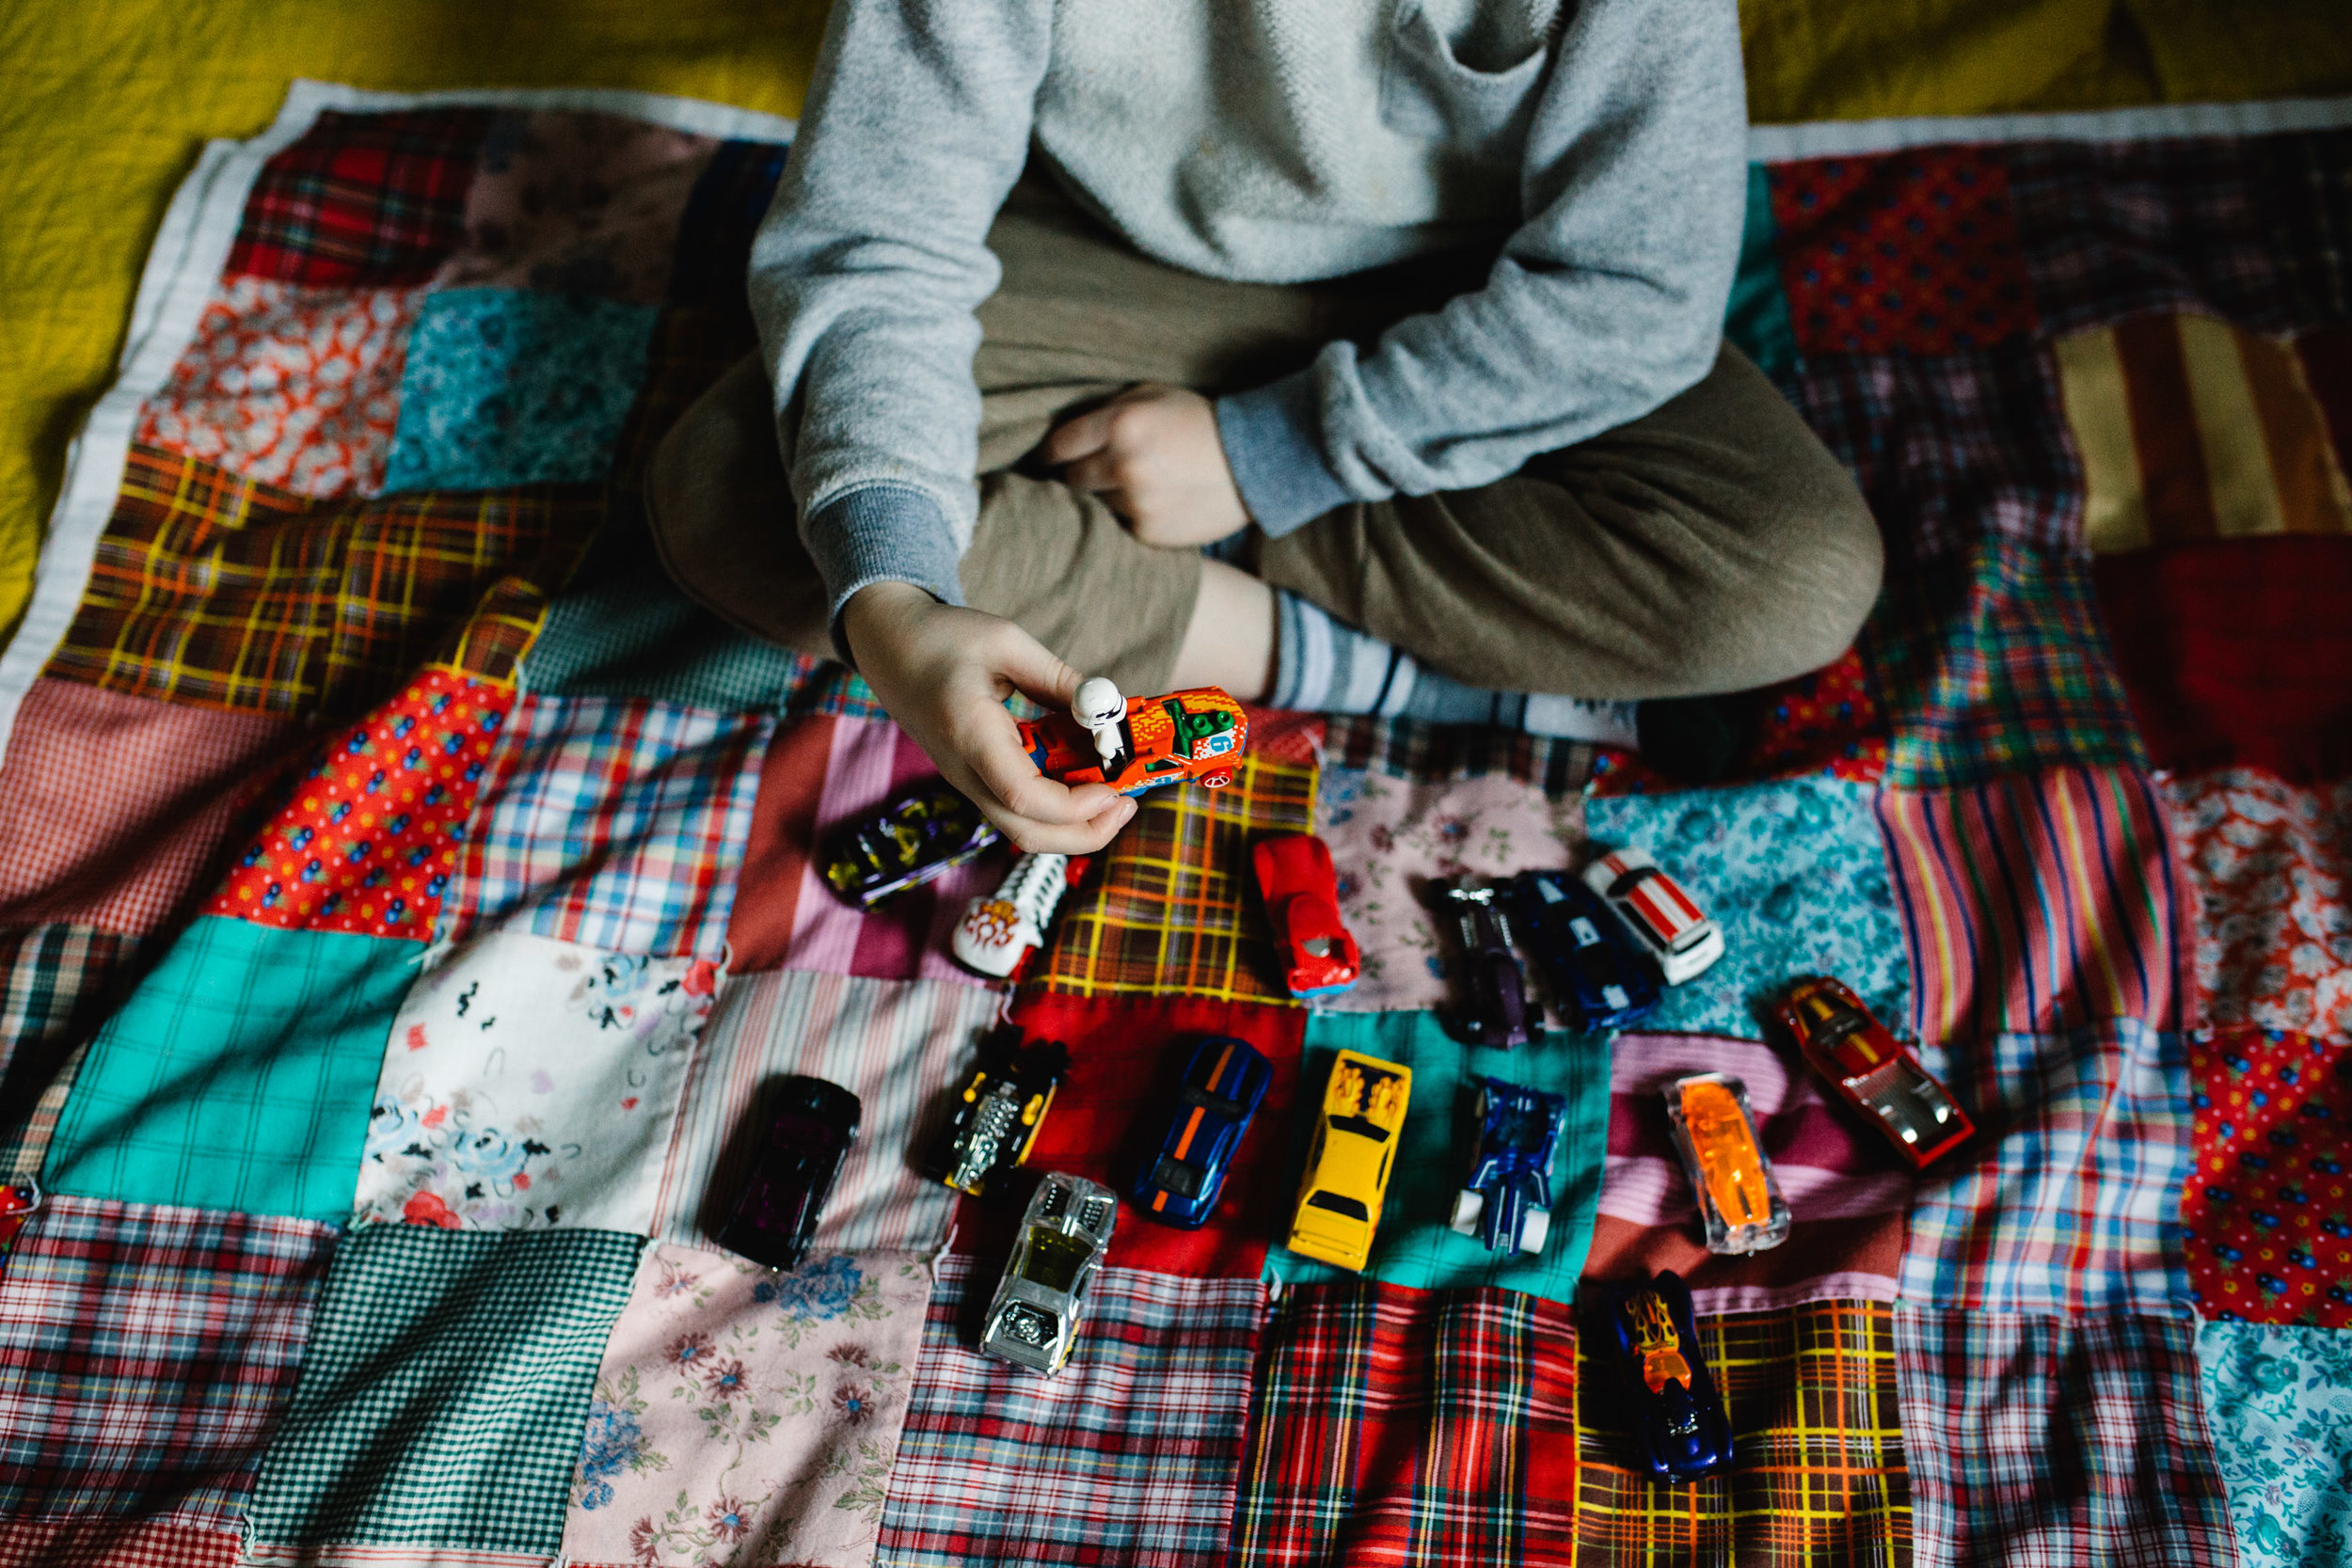 matchbox cars | lifestyle photographer 365 | Jennifer Tippett